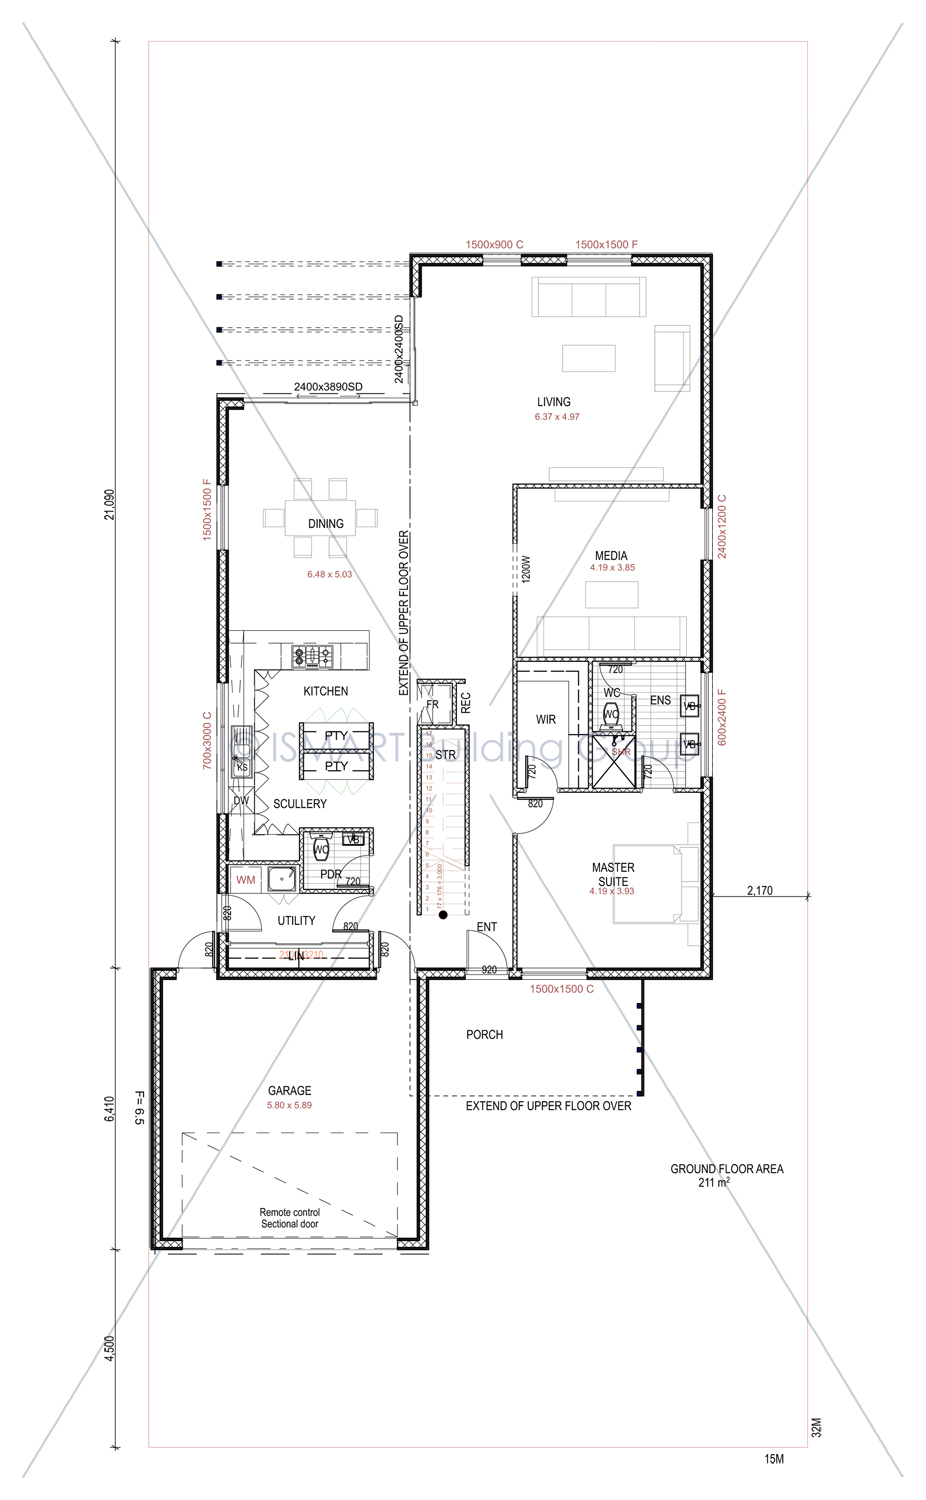 ISERENITY Eco Friendly Floorplan